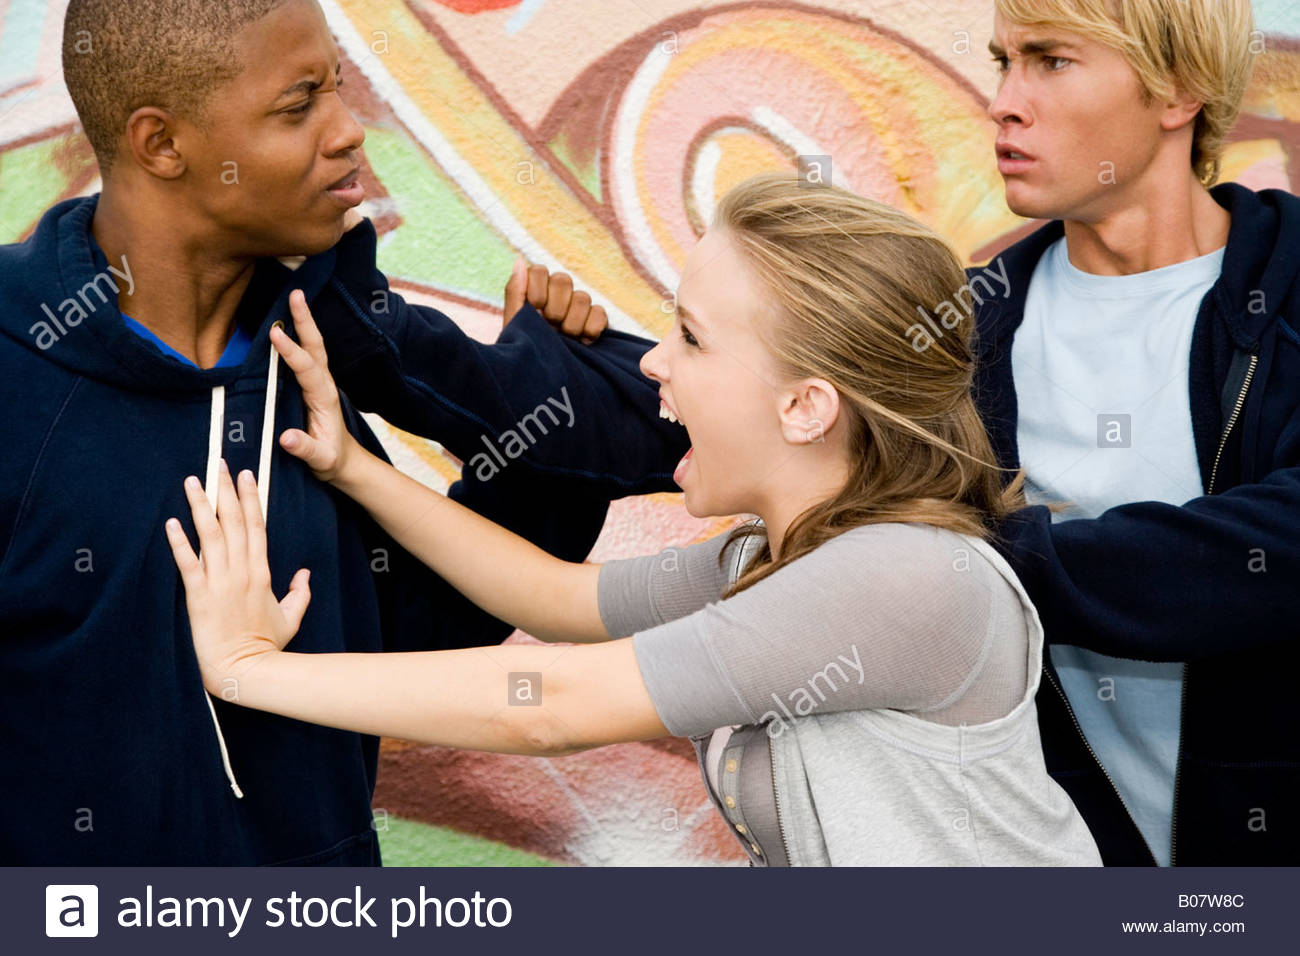 Two men fighting over a girl in front of a graffiti covered wall - Stock Image